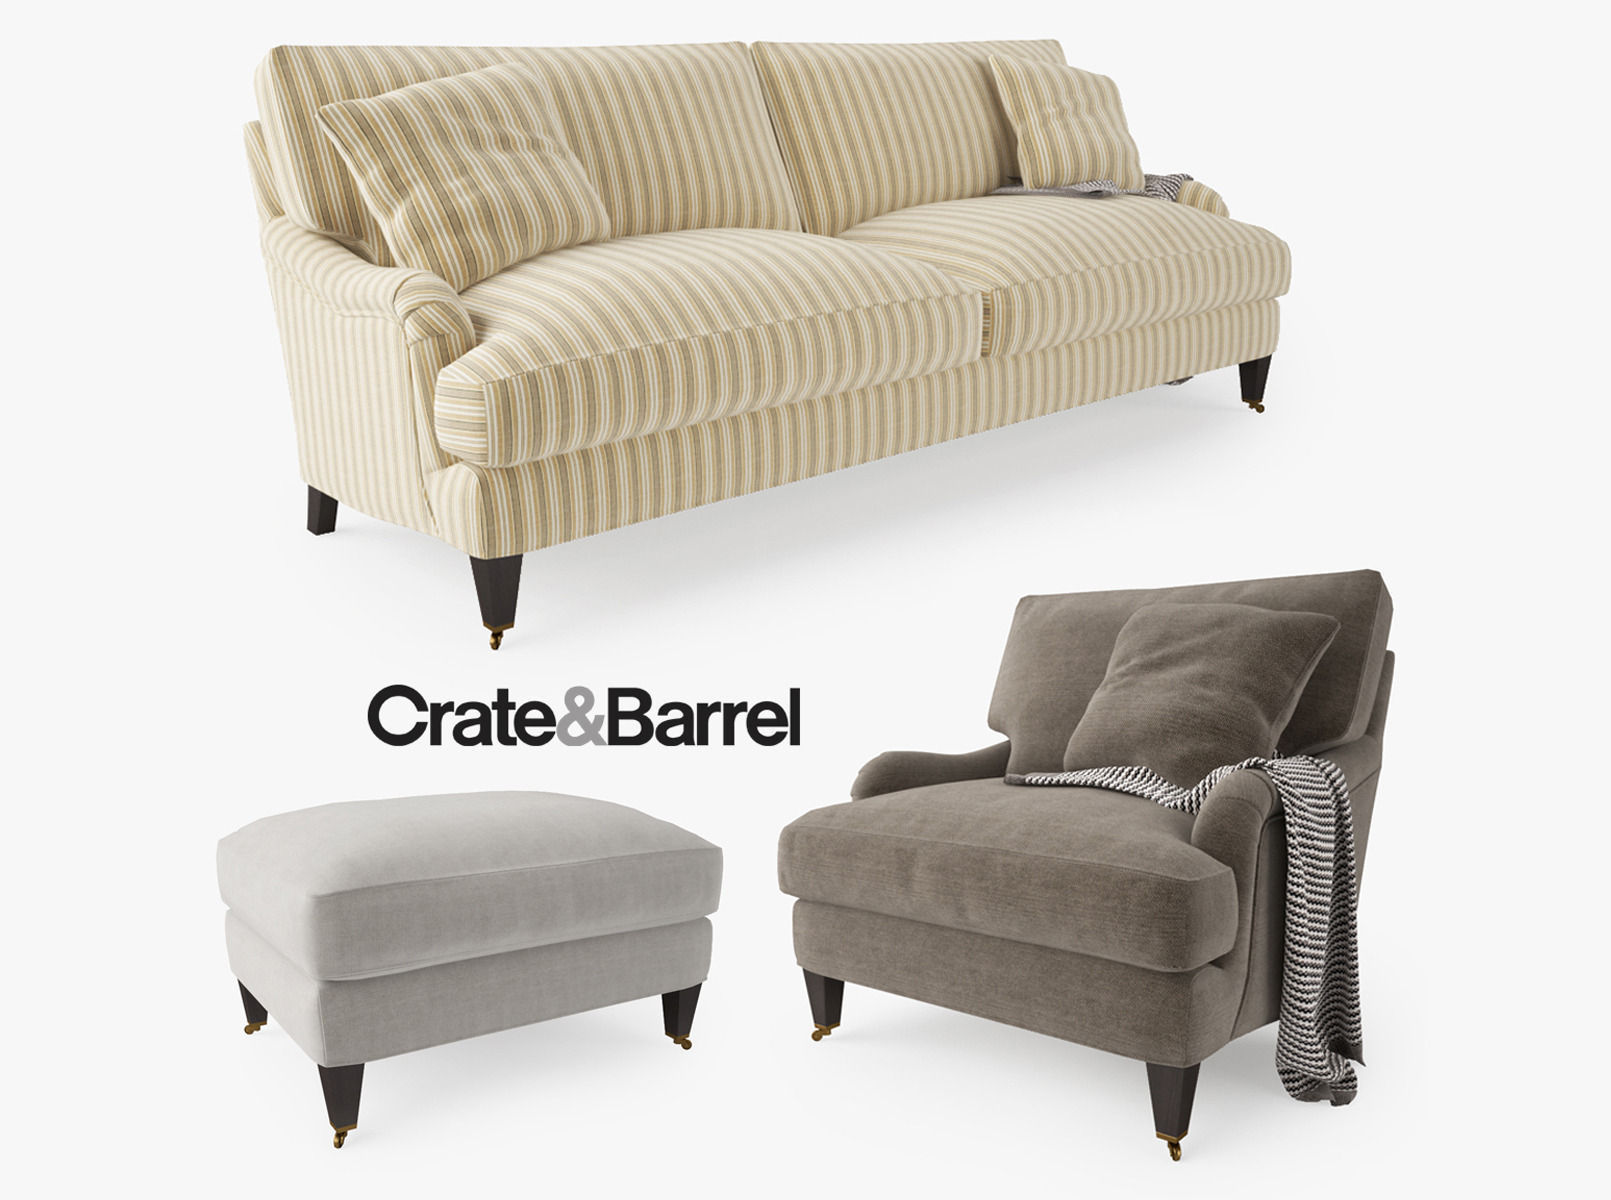 Crate and Barrel. K likes. Live the Crate and Barrel lifestyle with our exclusive collection of home furnishings and housewares classic to contemporary.